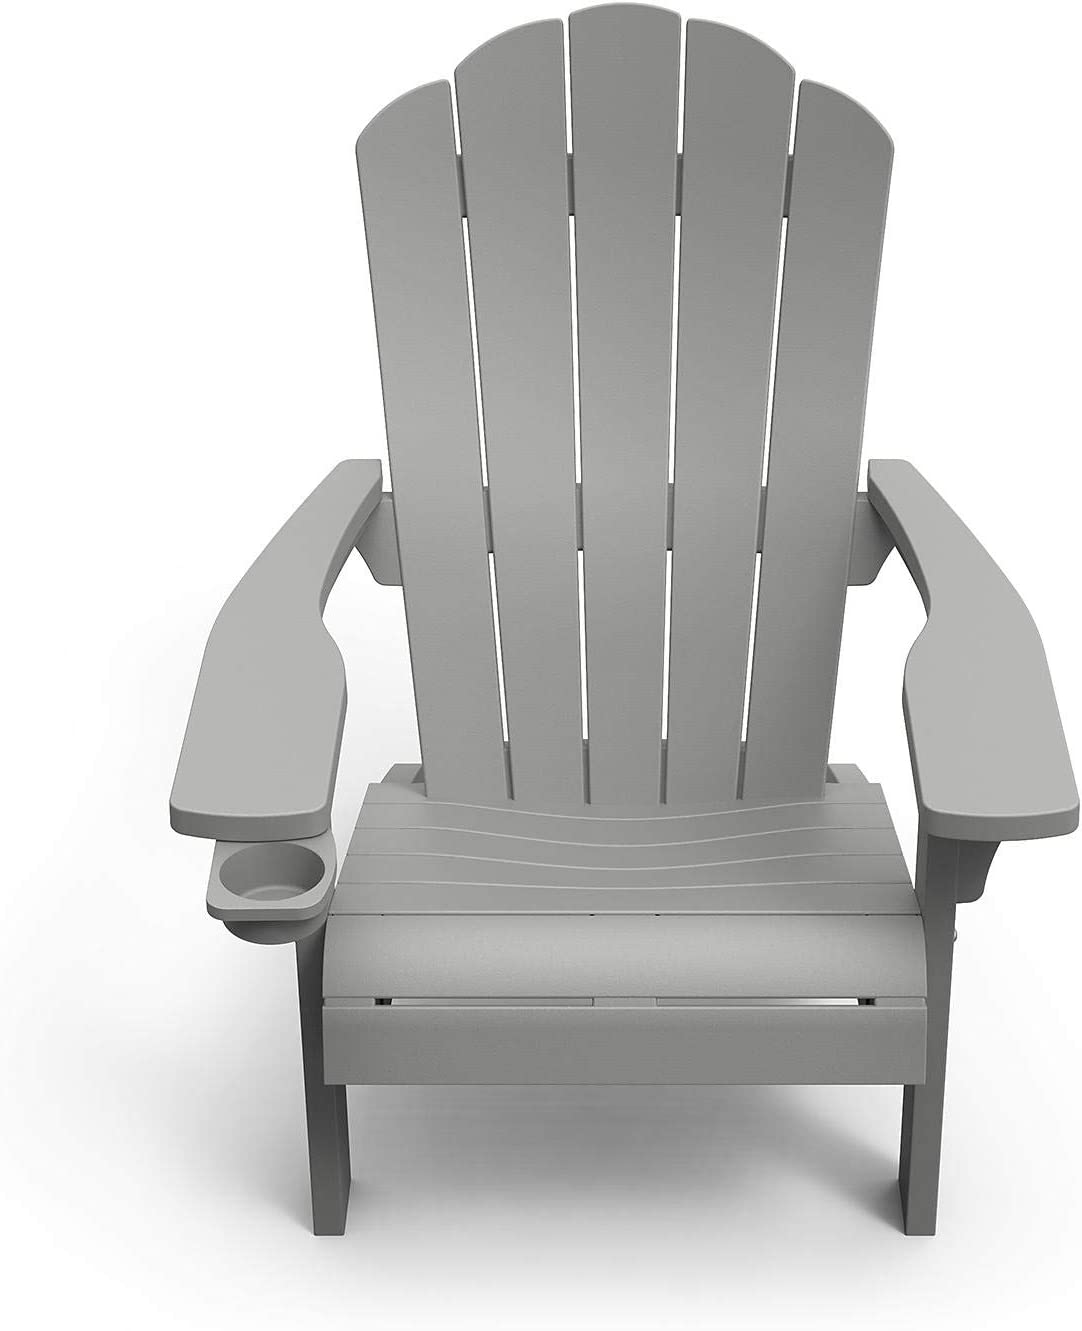 Outdoor Patio Garden Deck Furniture Resin Adirondack Chair with Built-in Cup Holder (Grey)